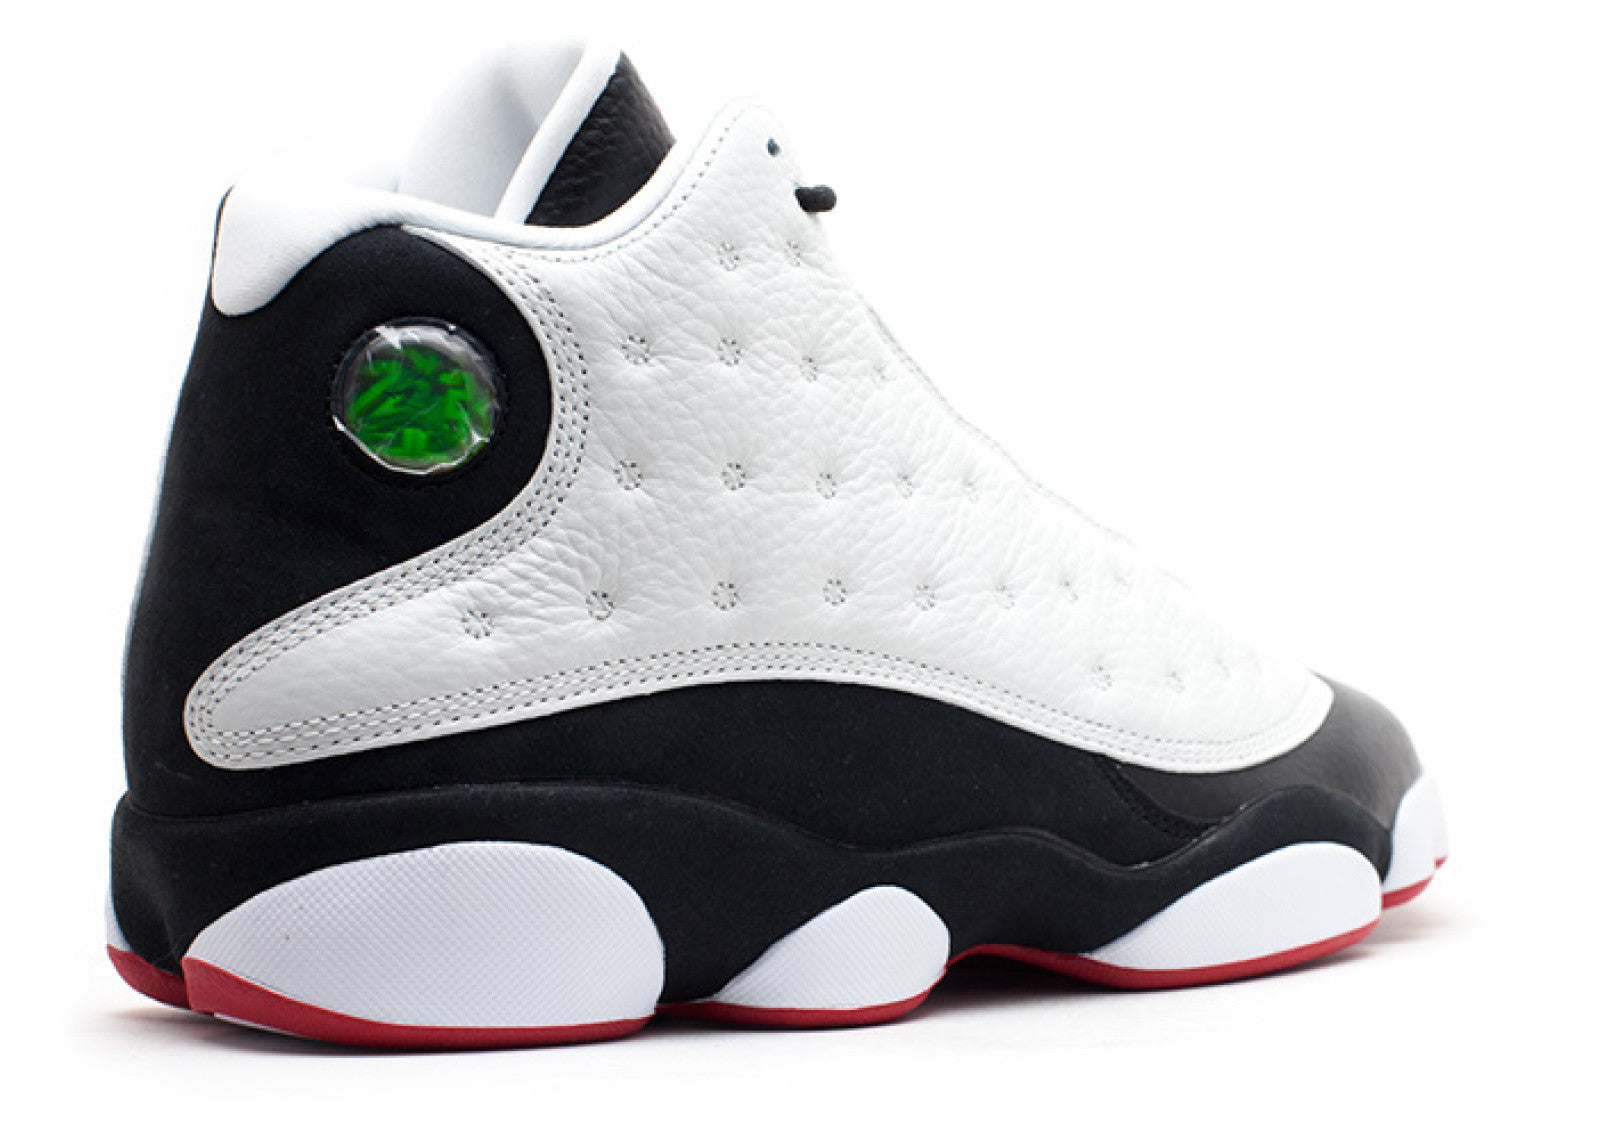 Air Jordan 13 Retro Quot He Got Game 2018 Quot 414571104